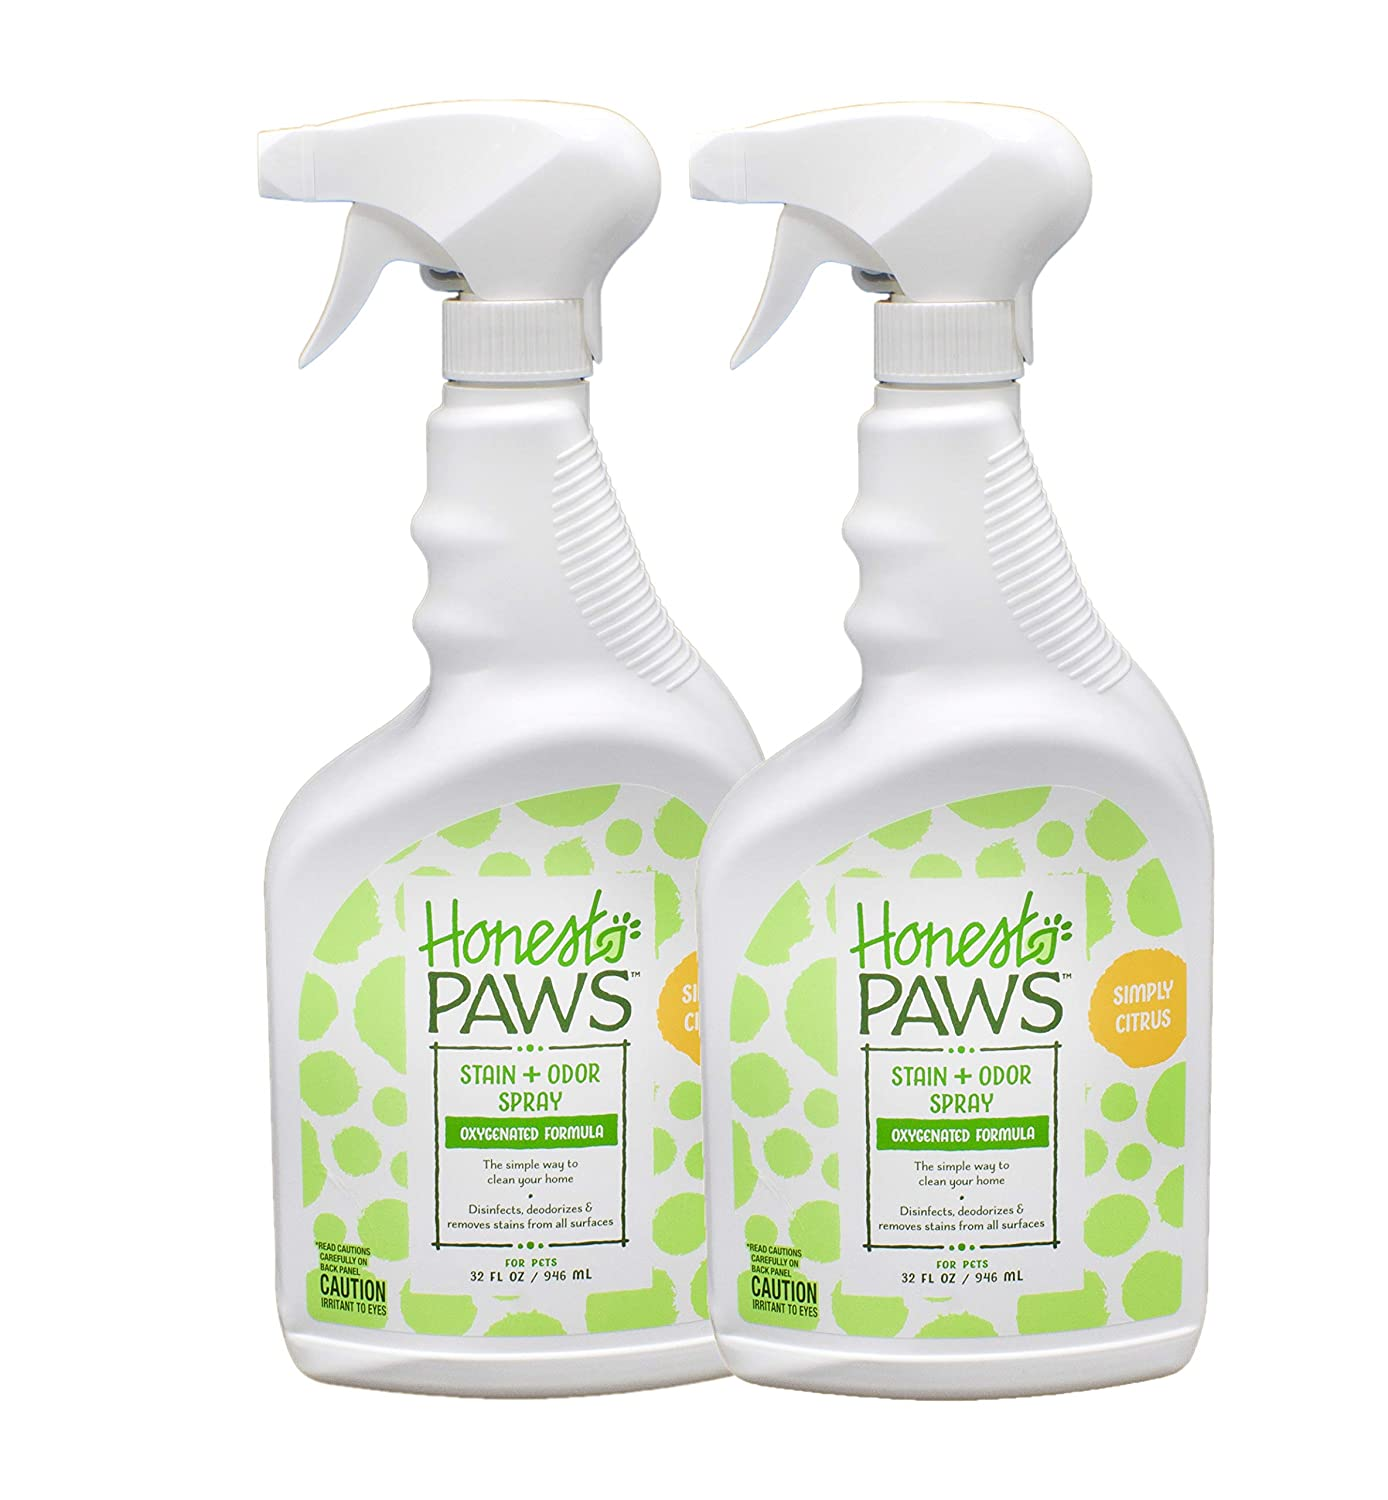 Honest Paws Carpet Cleaners And Stain And Odor Removers Non Toxic Pet Odor Eliminator Pack Of 2